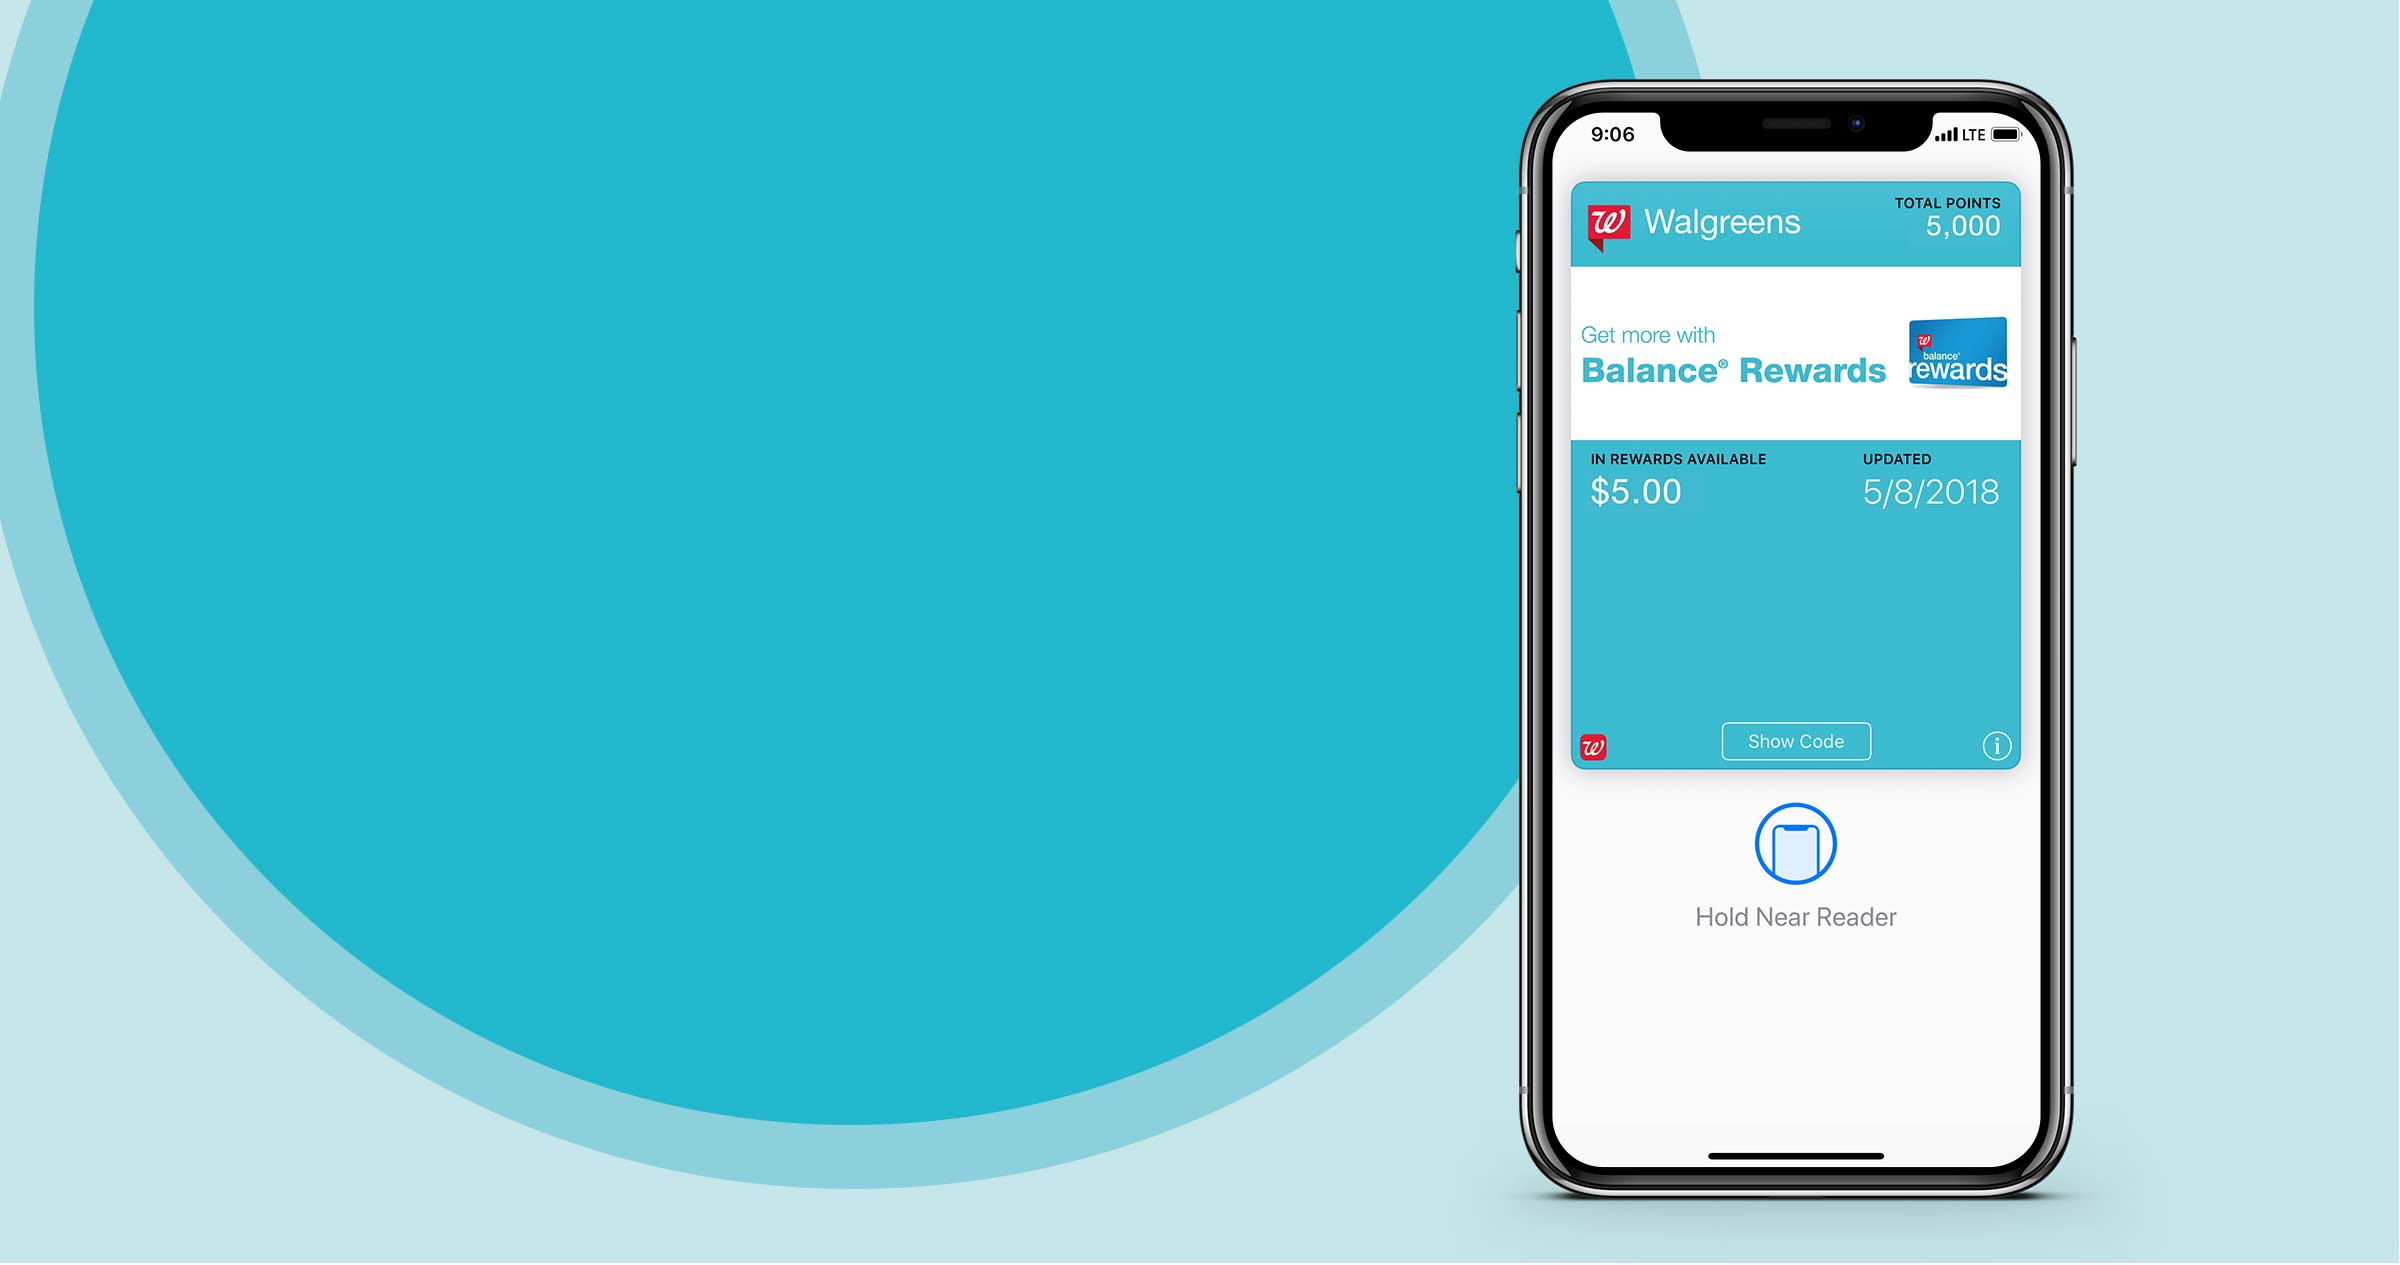 Use The Walgreens App & SAVE! Get everything you need in one convenient place with the Walgreens app. Refill prescriptions, print photos, clip coupons for in-store savings (the clerk will scan your app and savings will automatically apply), and do more with this award-winning app. Click now .